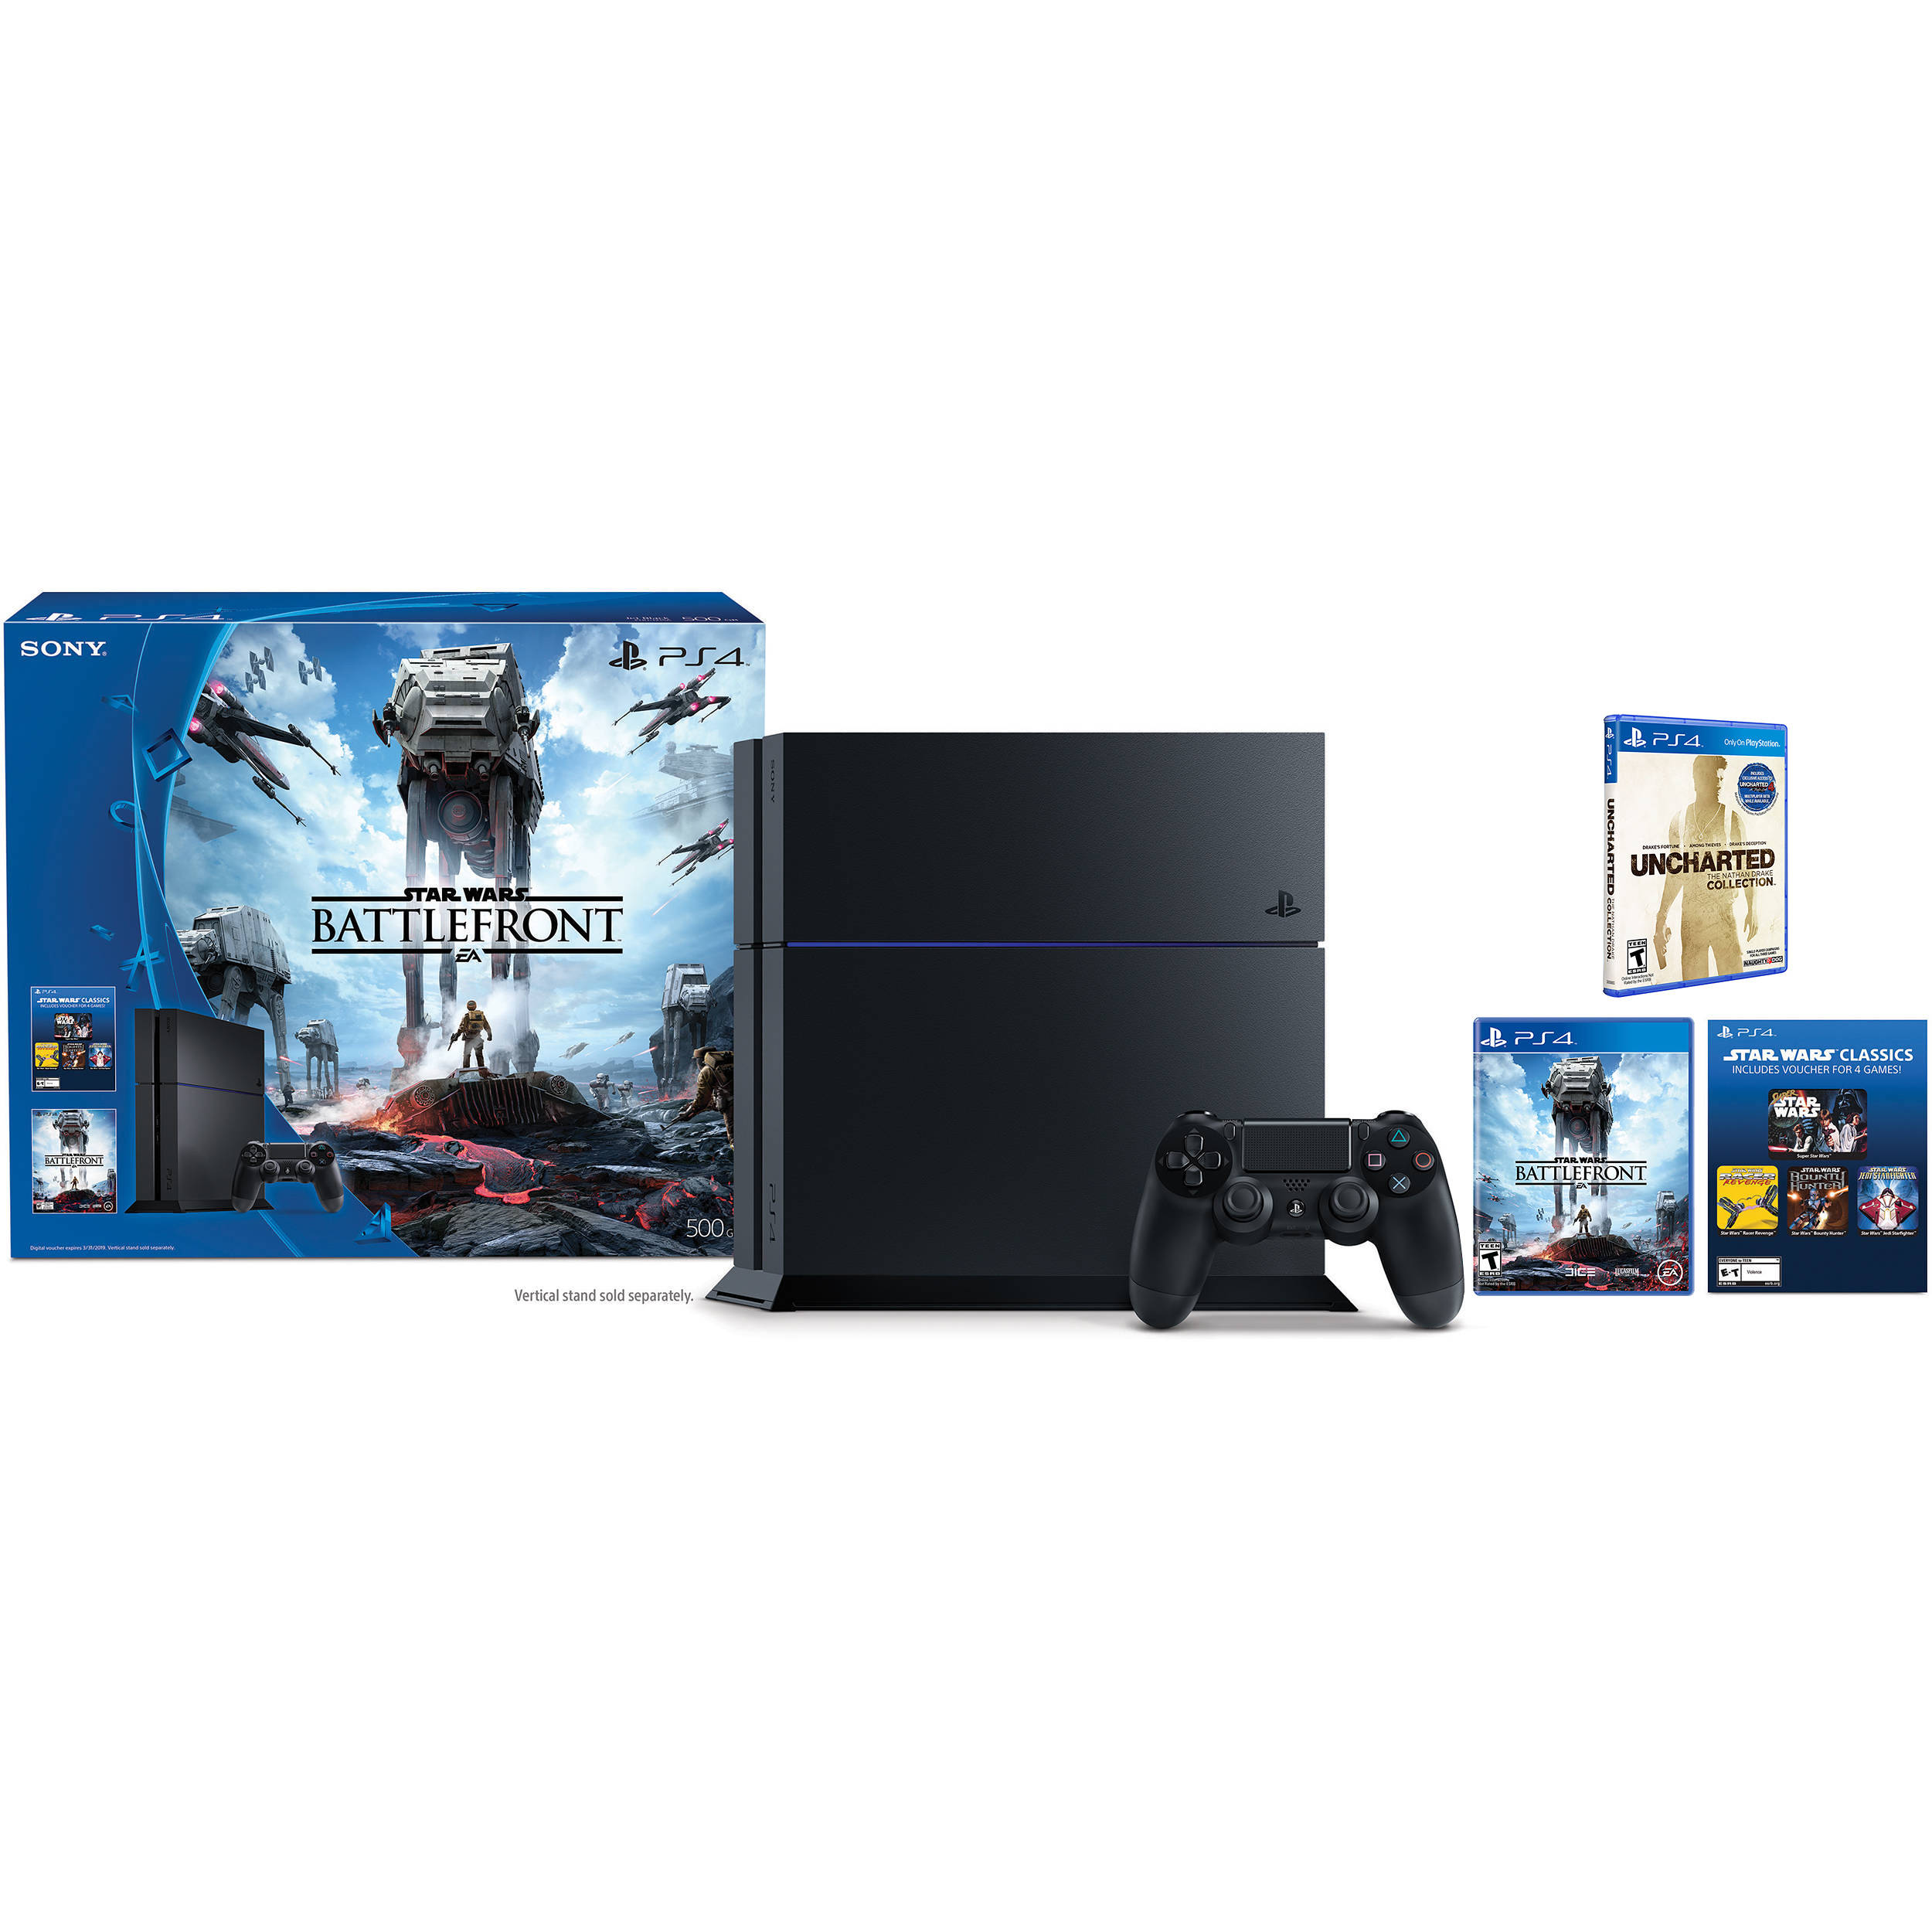 Sony Playstation 4 Star Wars Battlefront Bundle With Uncharted The Nathan Drake Collection Kit